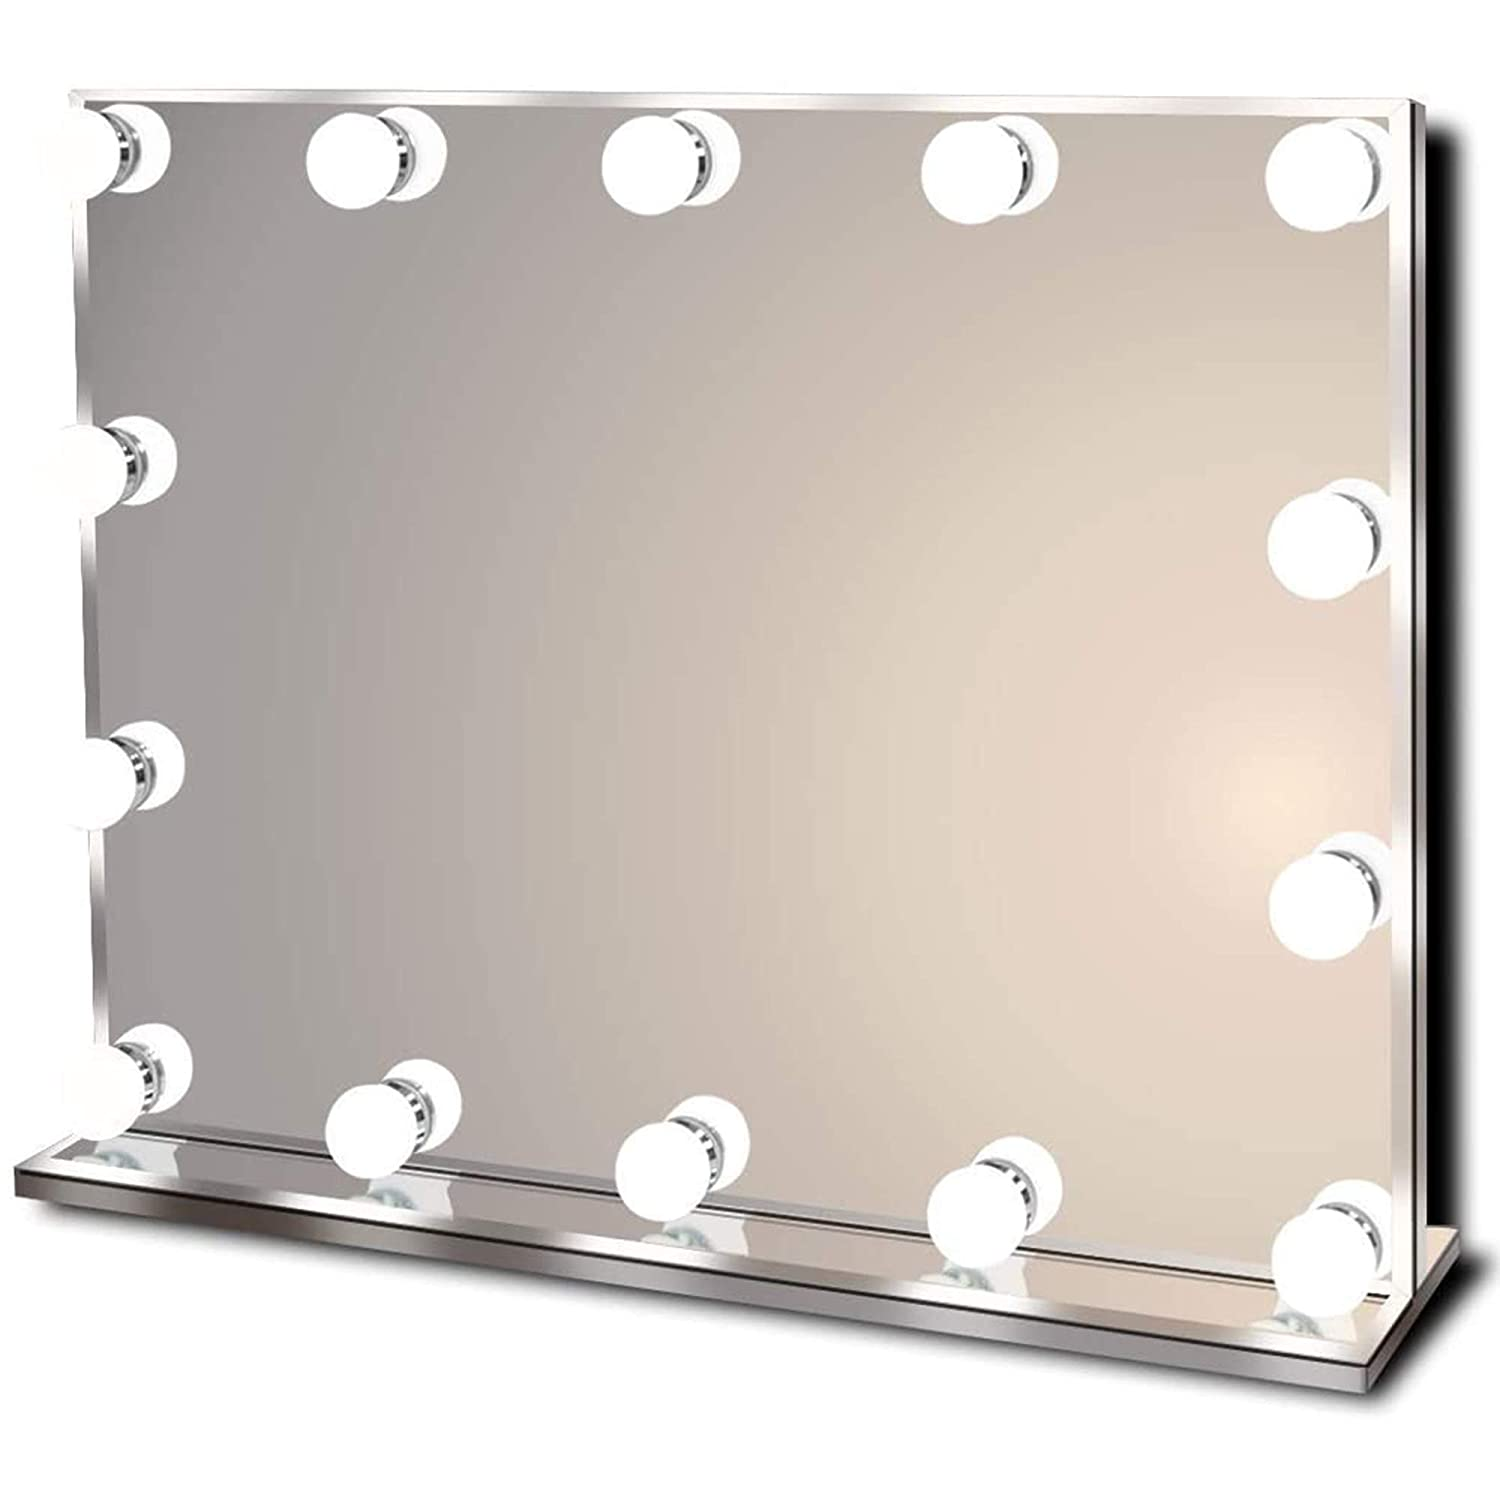 Hollywood Lighted Vanity Makeup Mirror L LED Free shipping Lights Bright with 67% OFF of fixed price